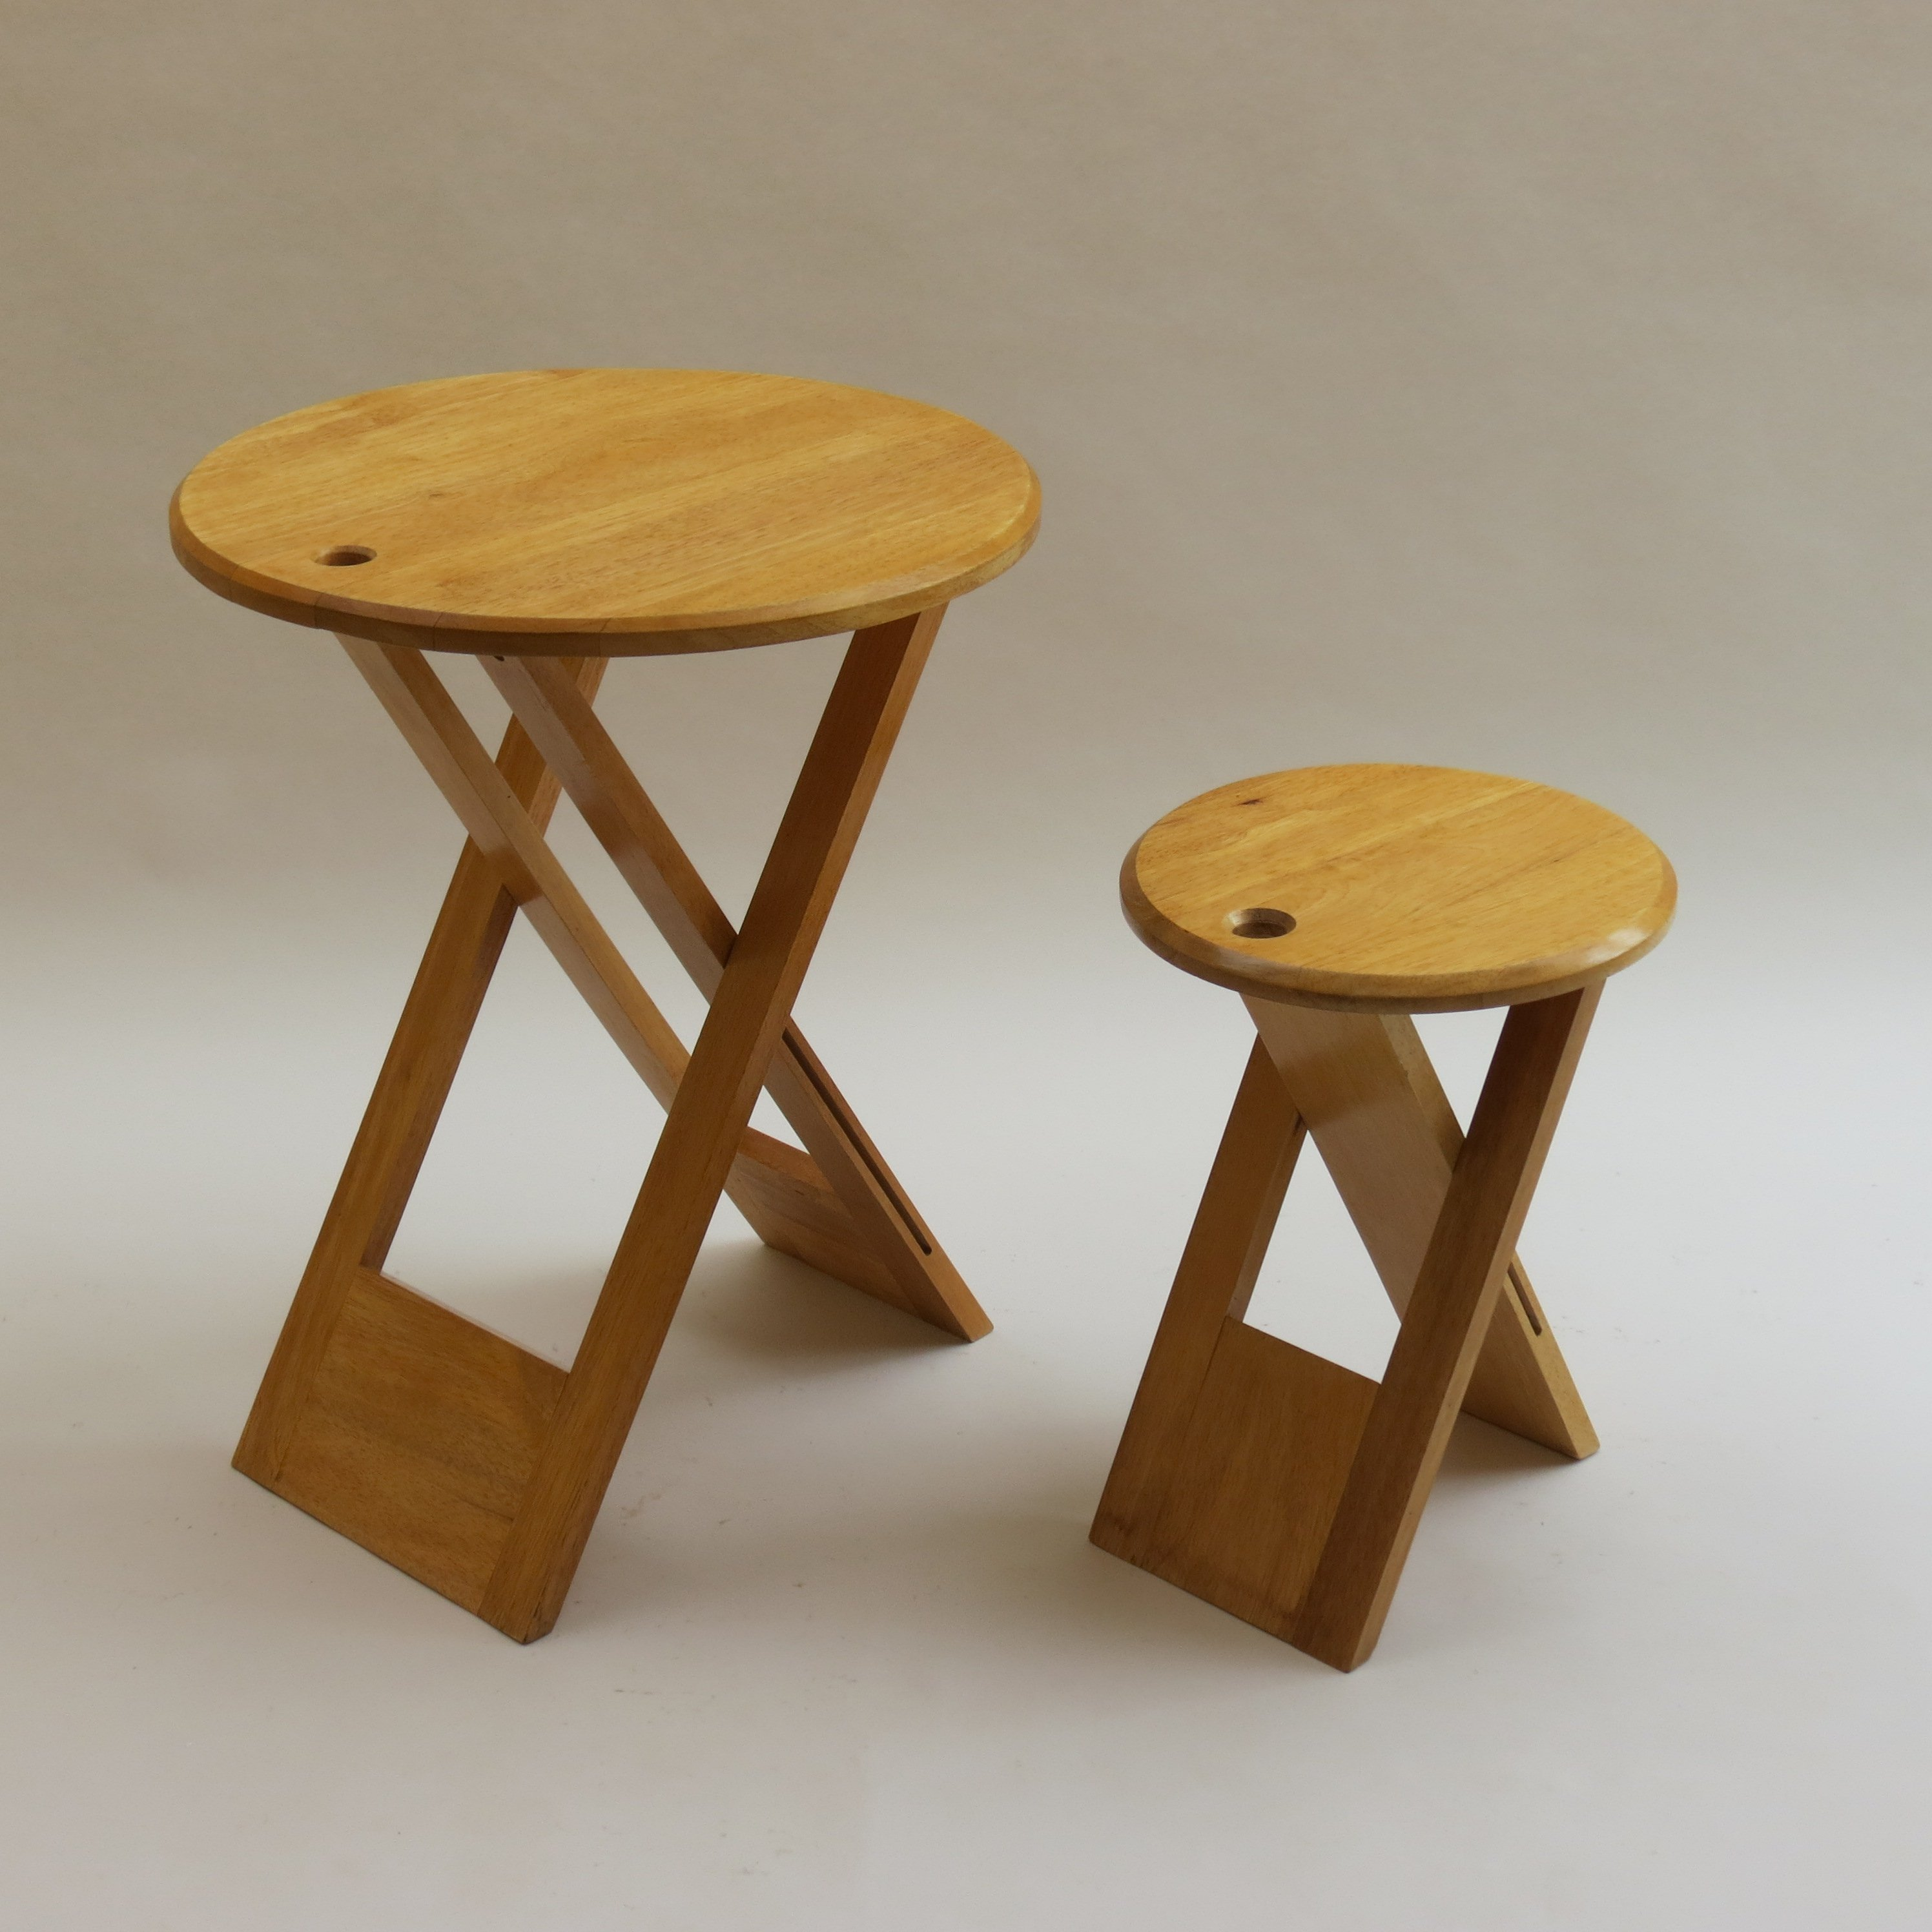 - Vintage Folding Wooden Stool & Dining Table, 1980s #133307